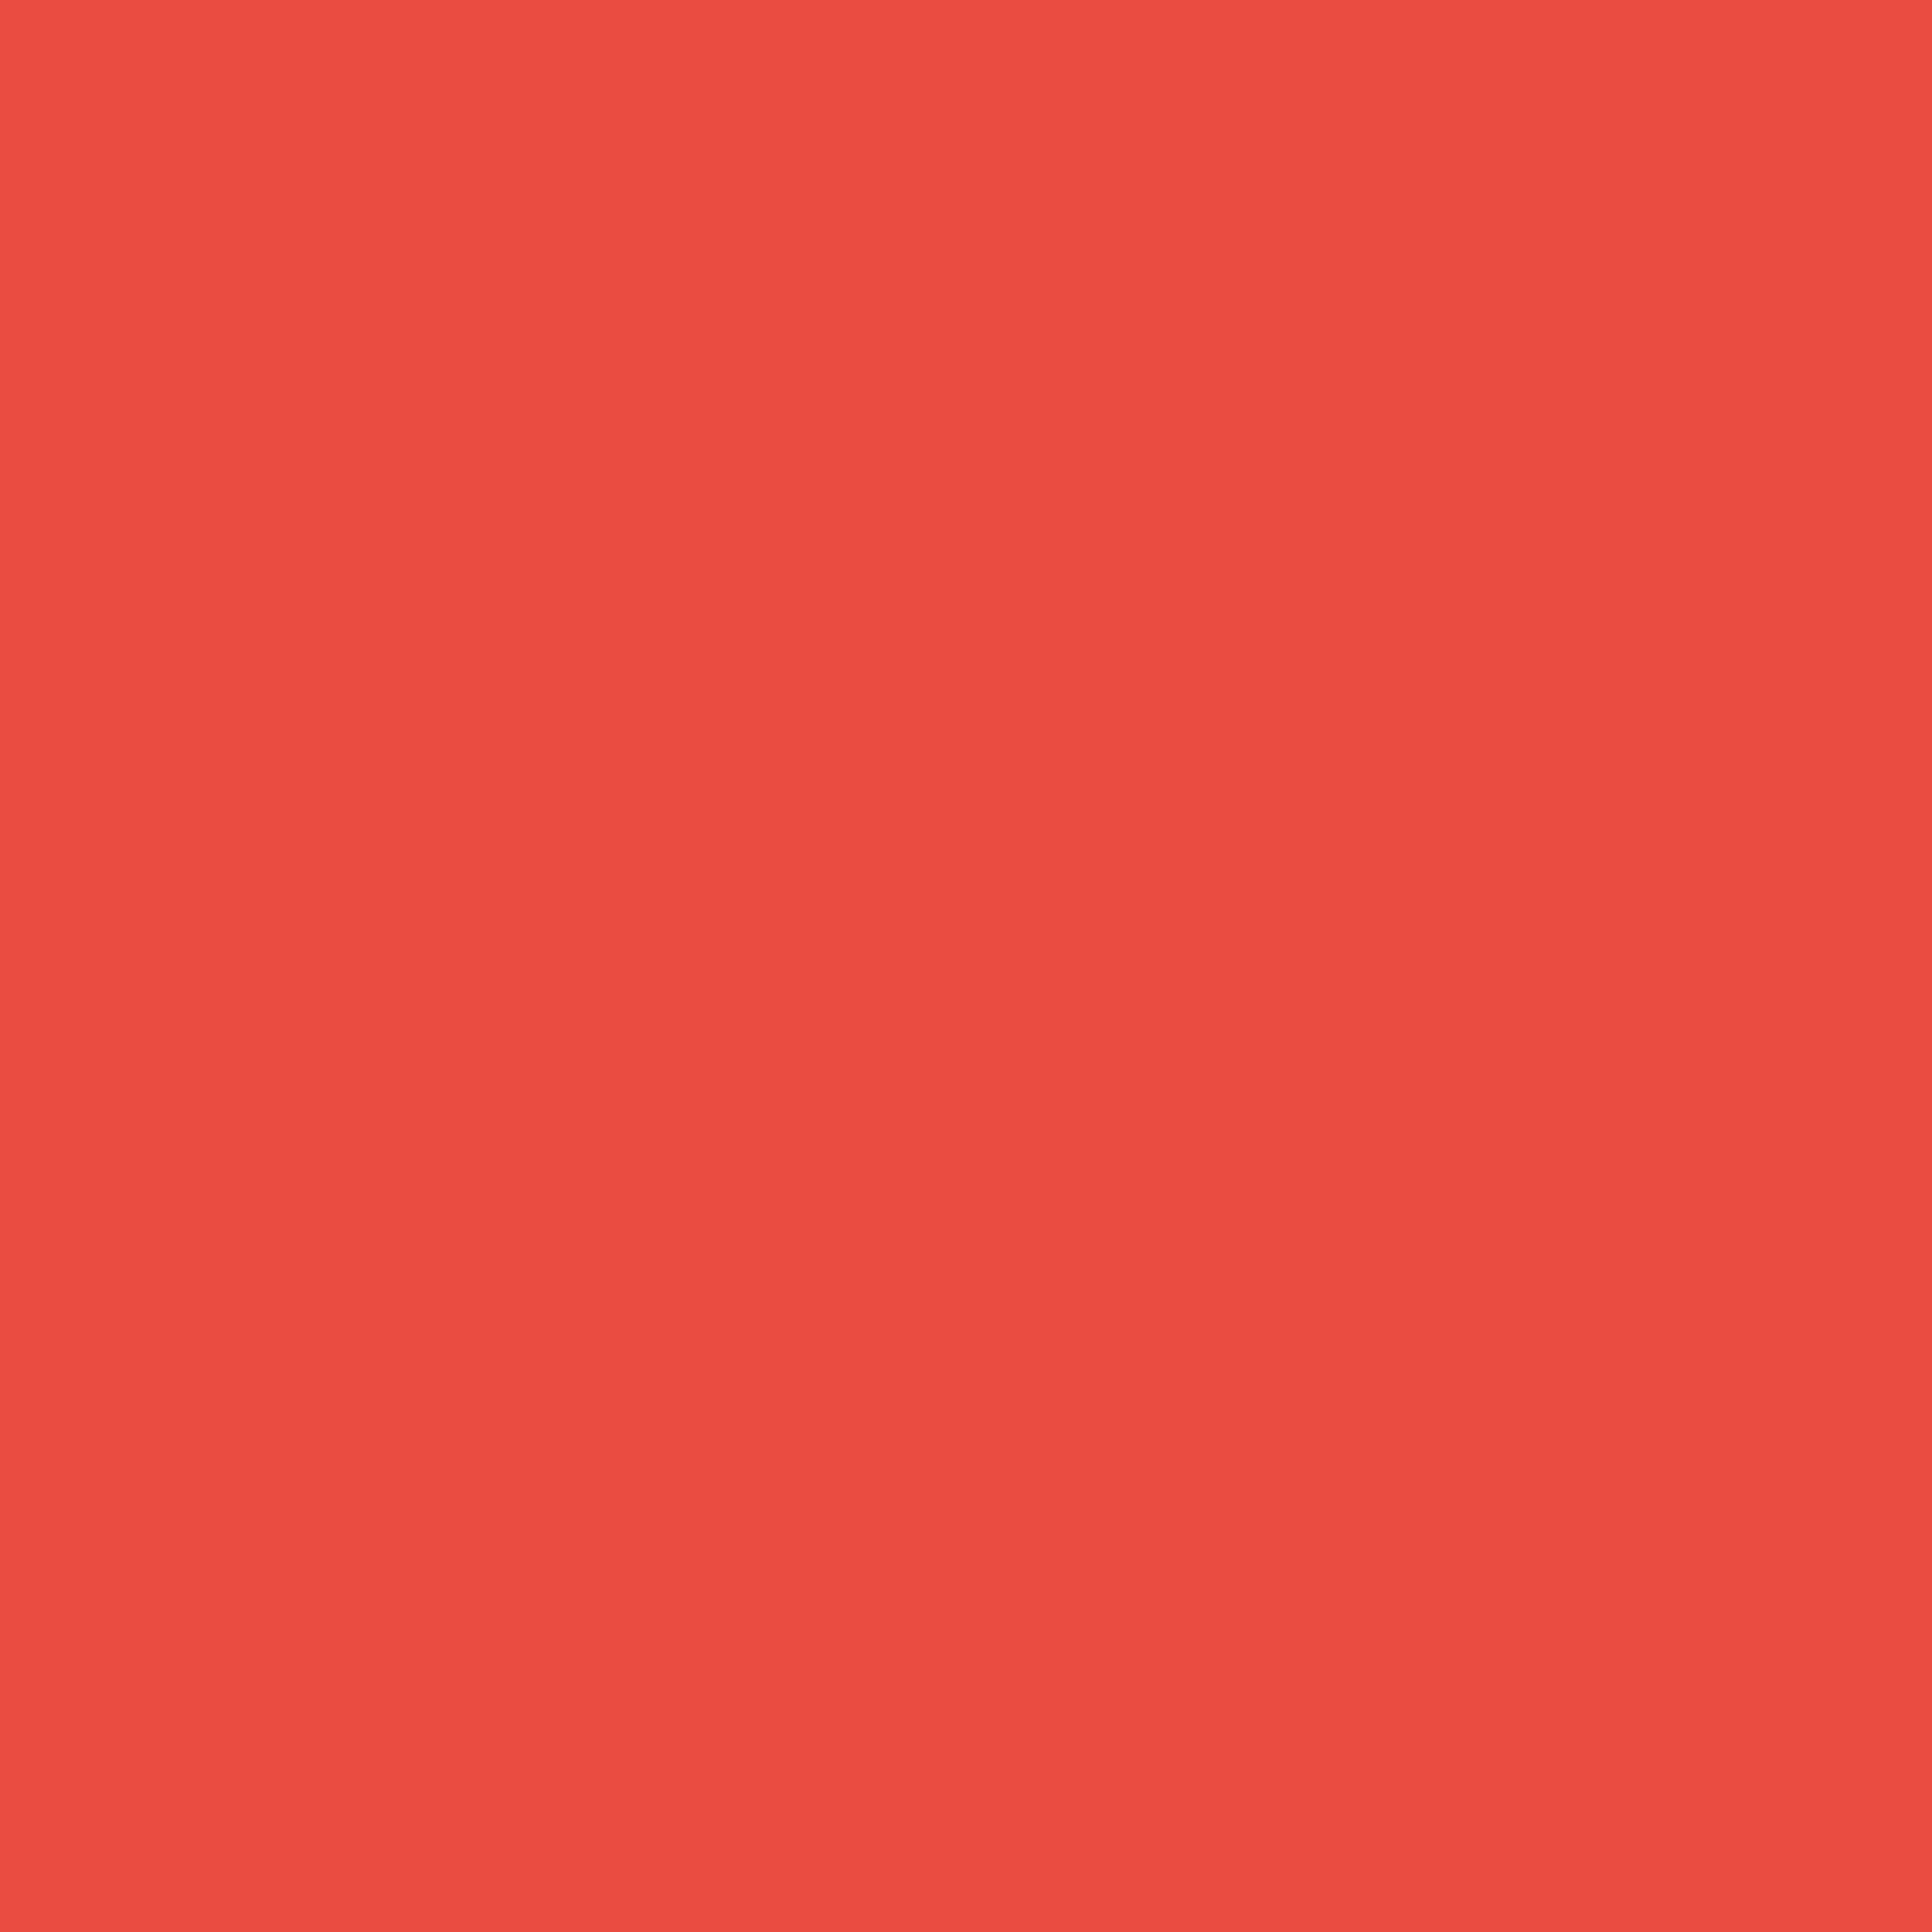 3600x3600 Carmine Pink Solid Color Background